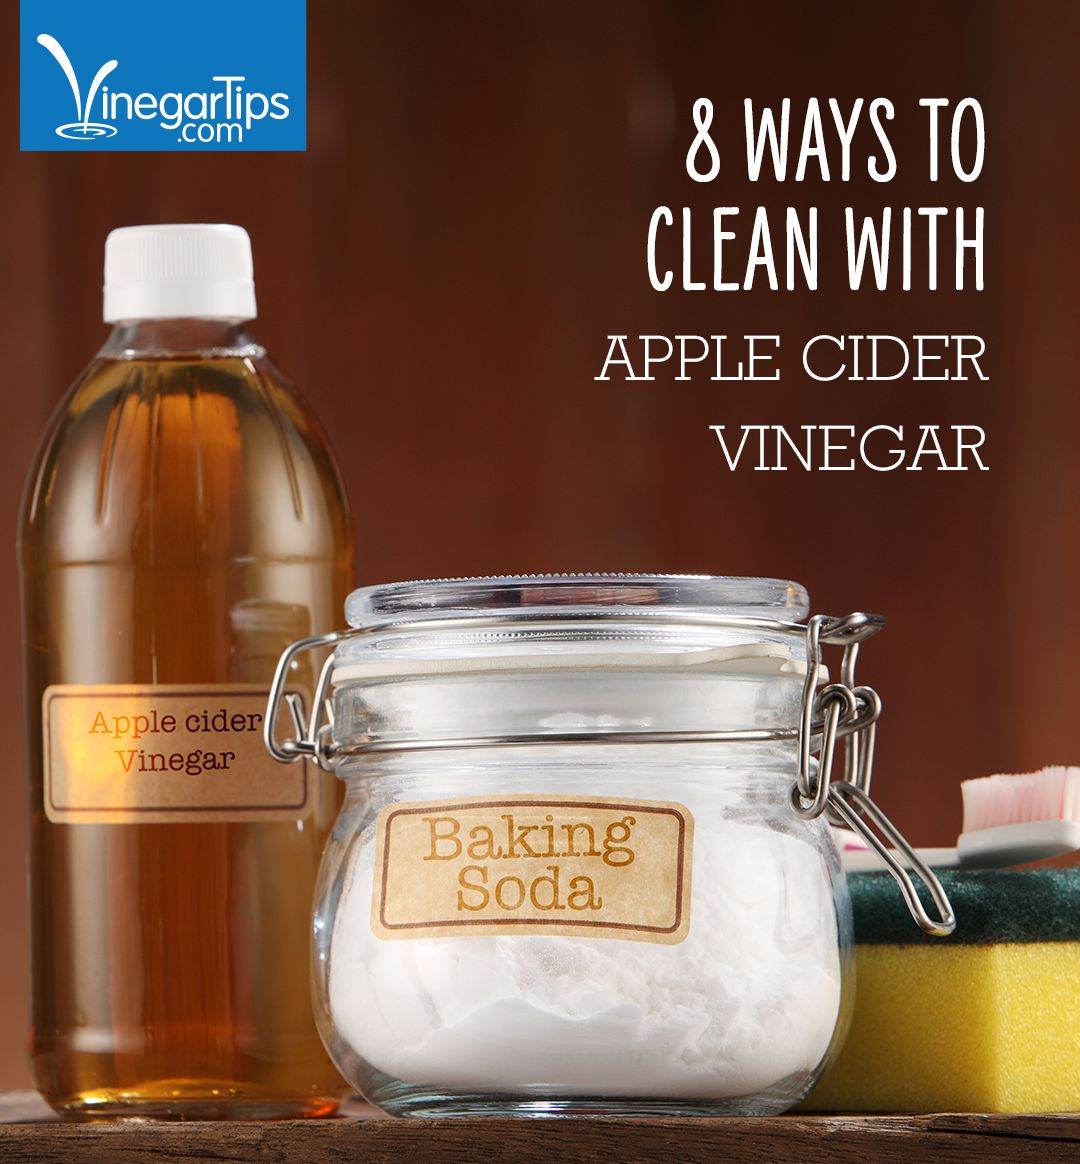 8 Ways to Clean With Apple Cider Vinegar (With images